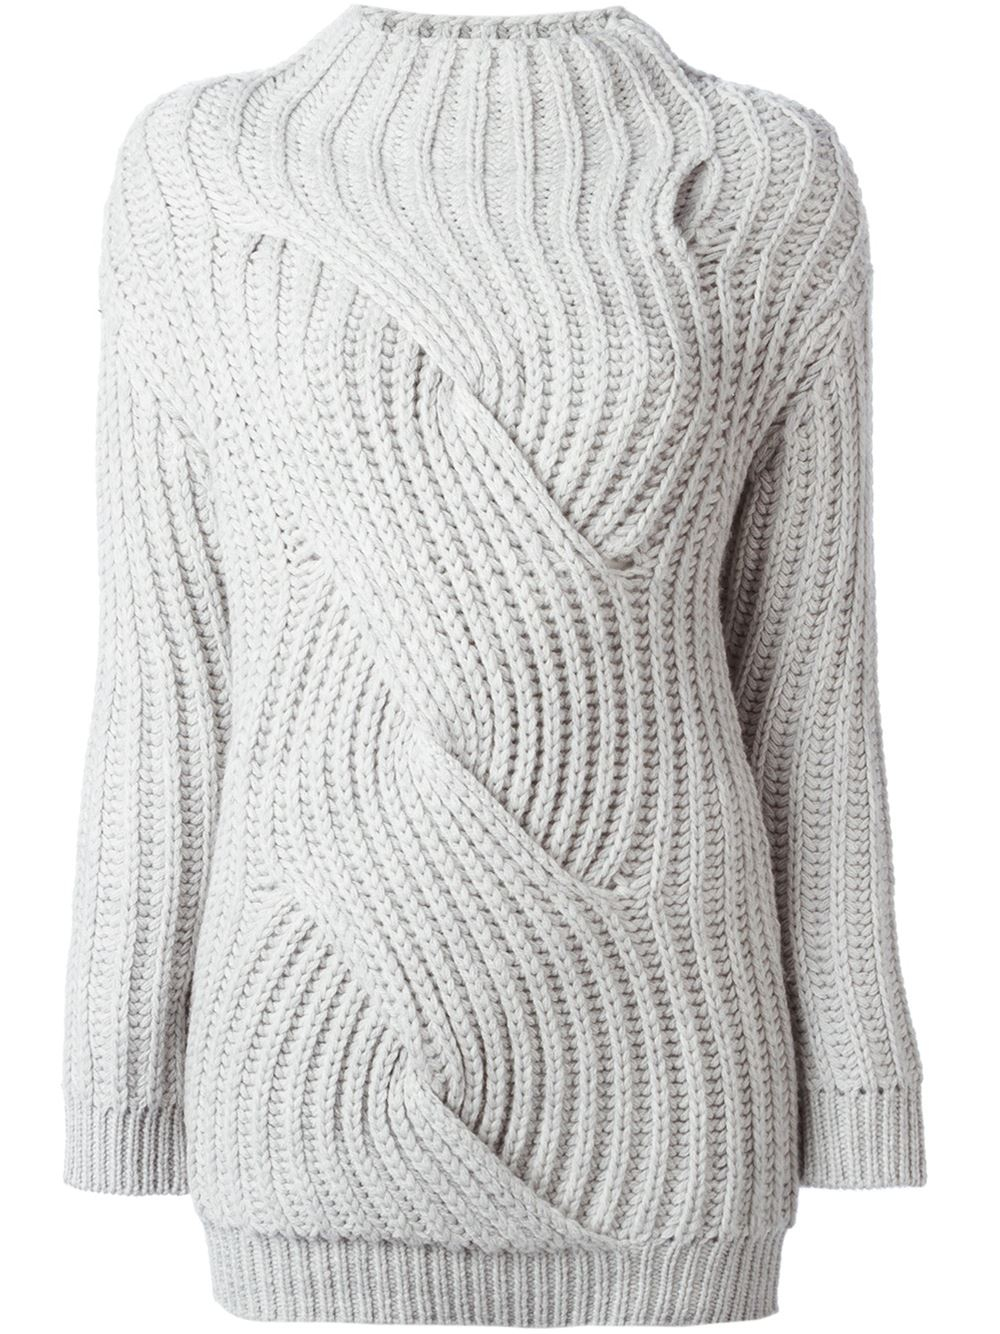 Carven Chunky Ribbed Sweater in Gray | Lyst